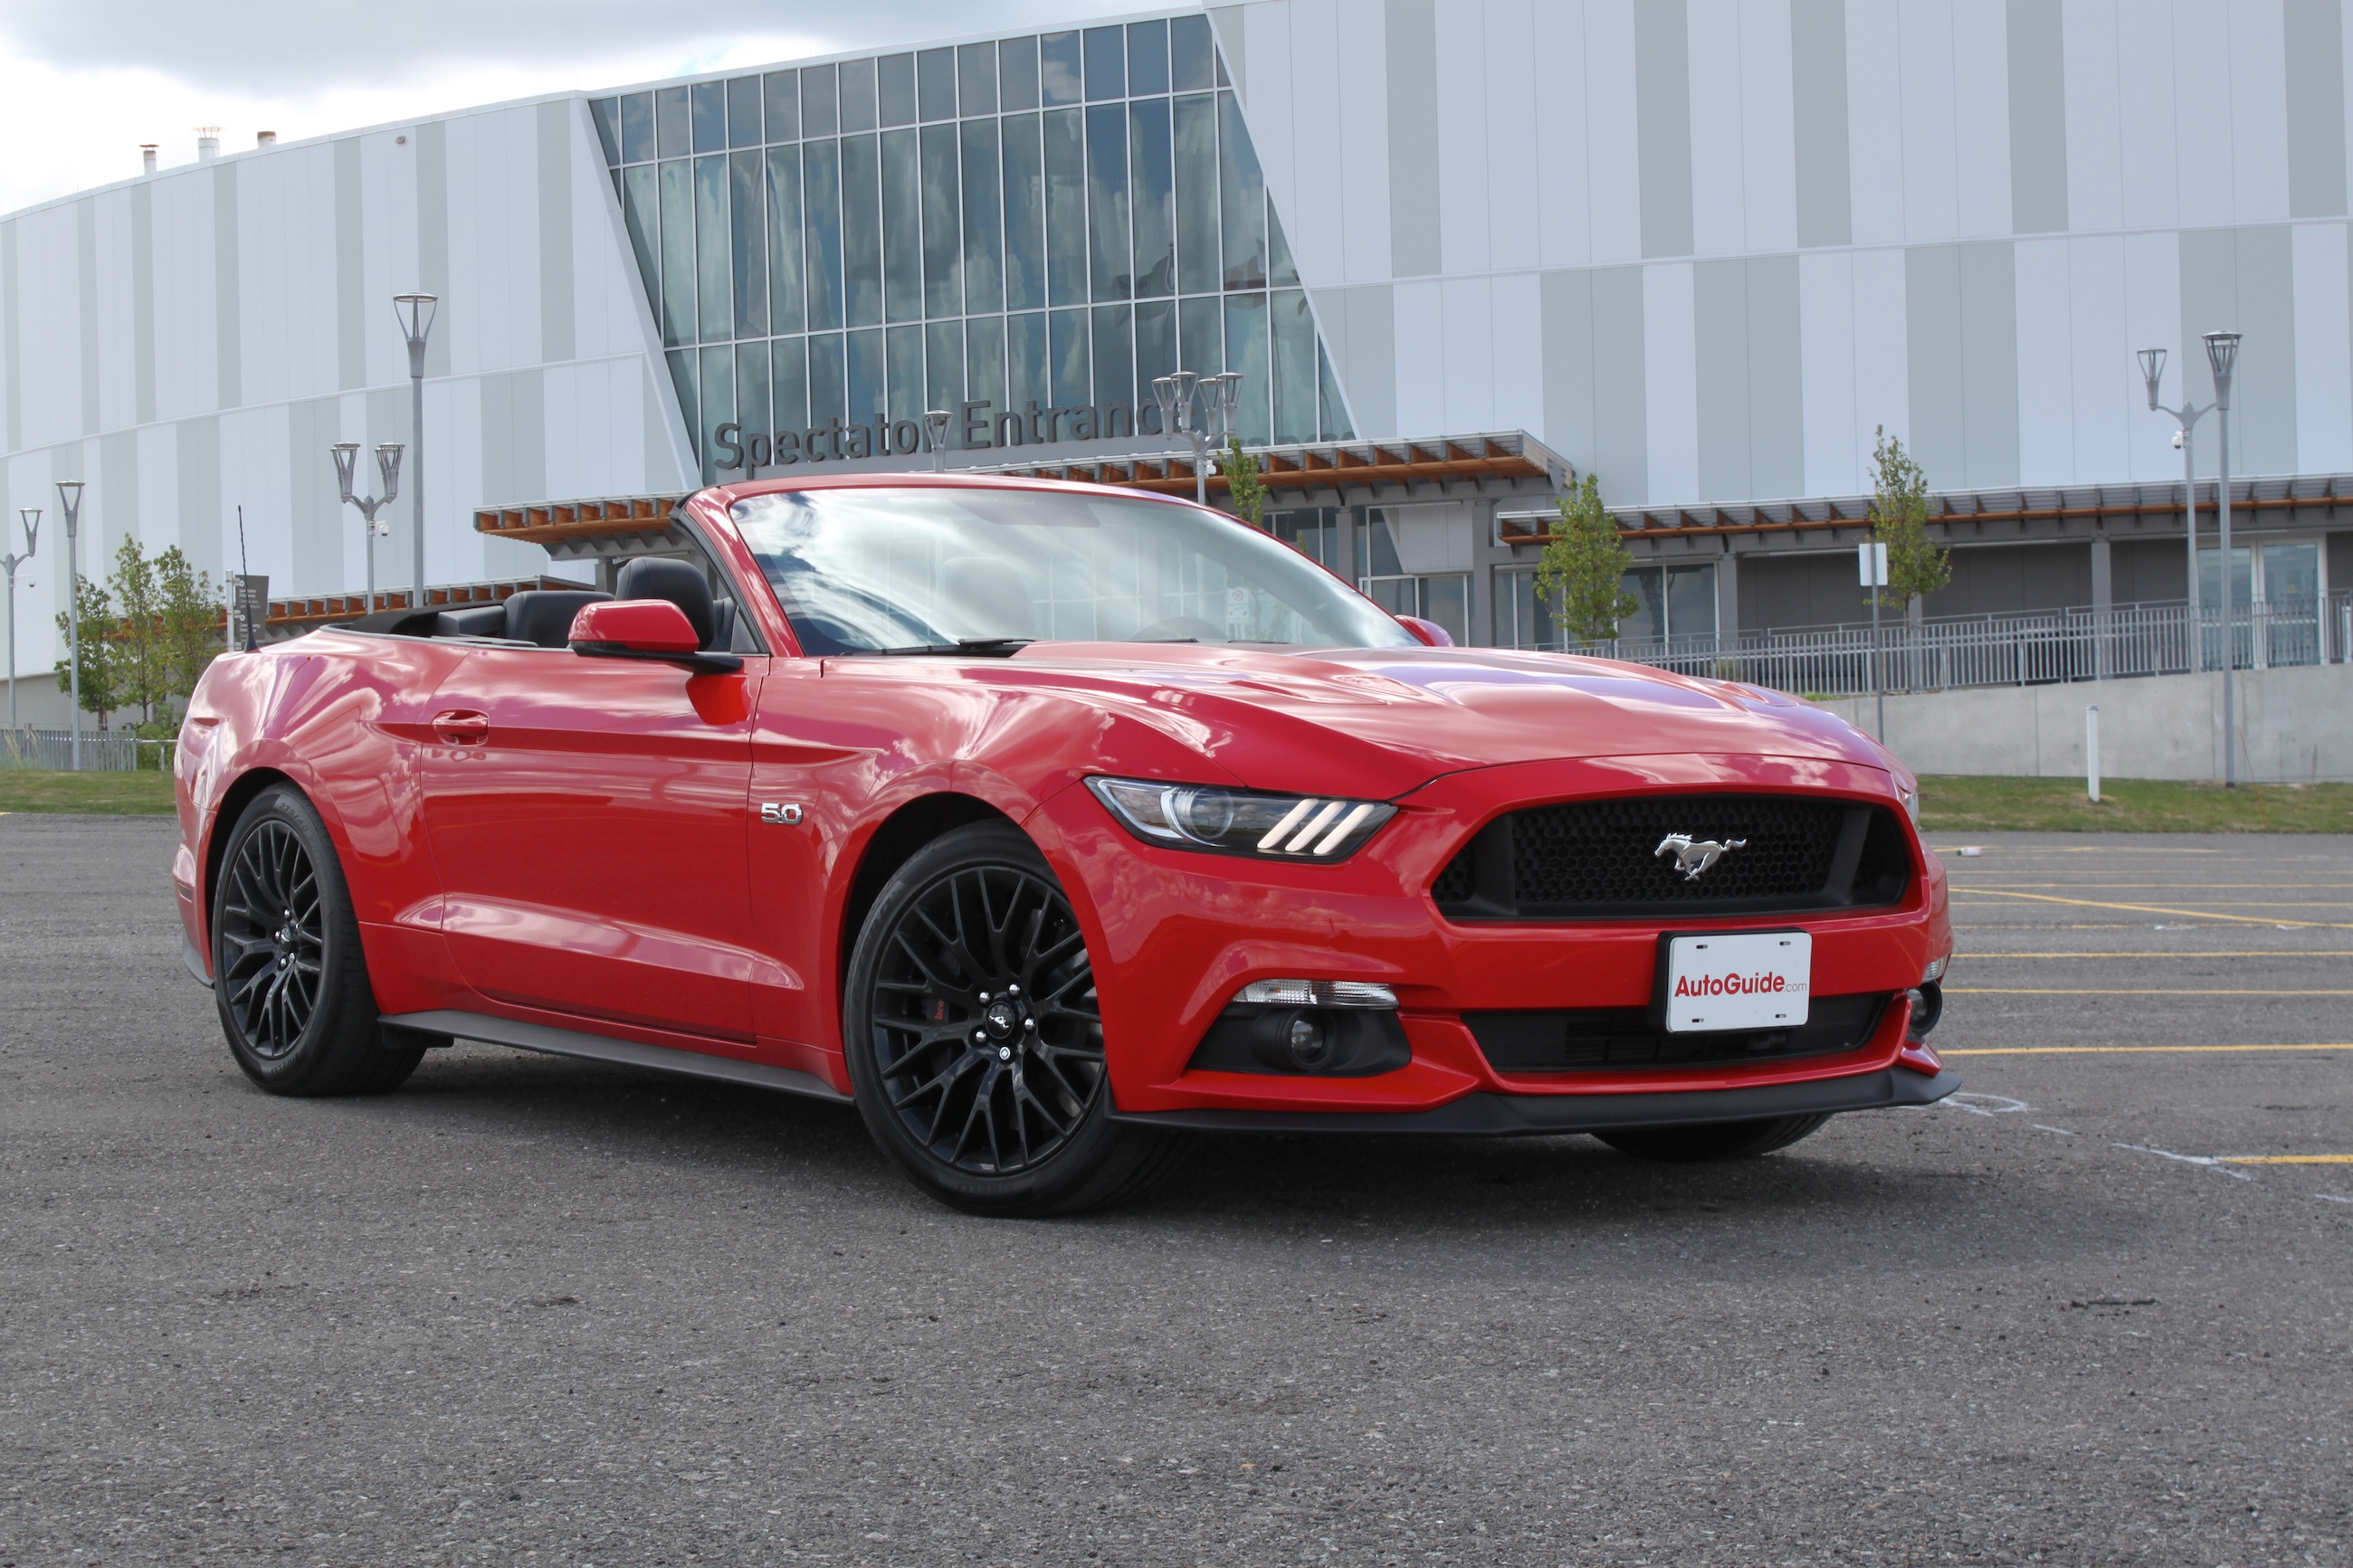 2017 Ford Mustang Gt Convertible Review Autoguide Com